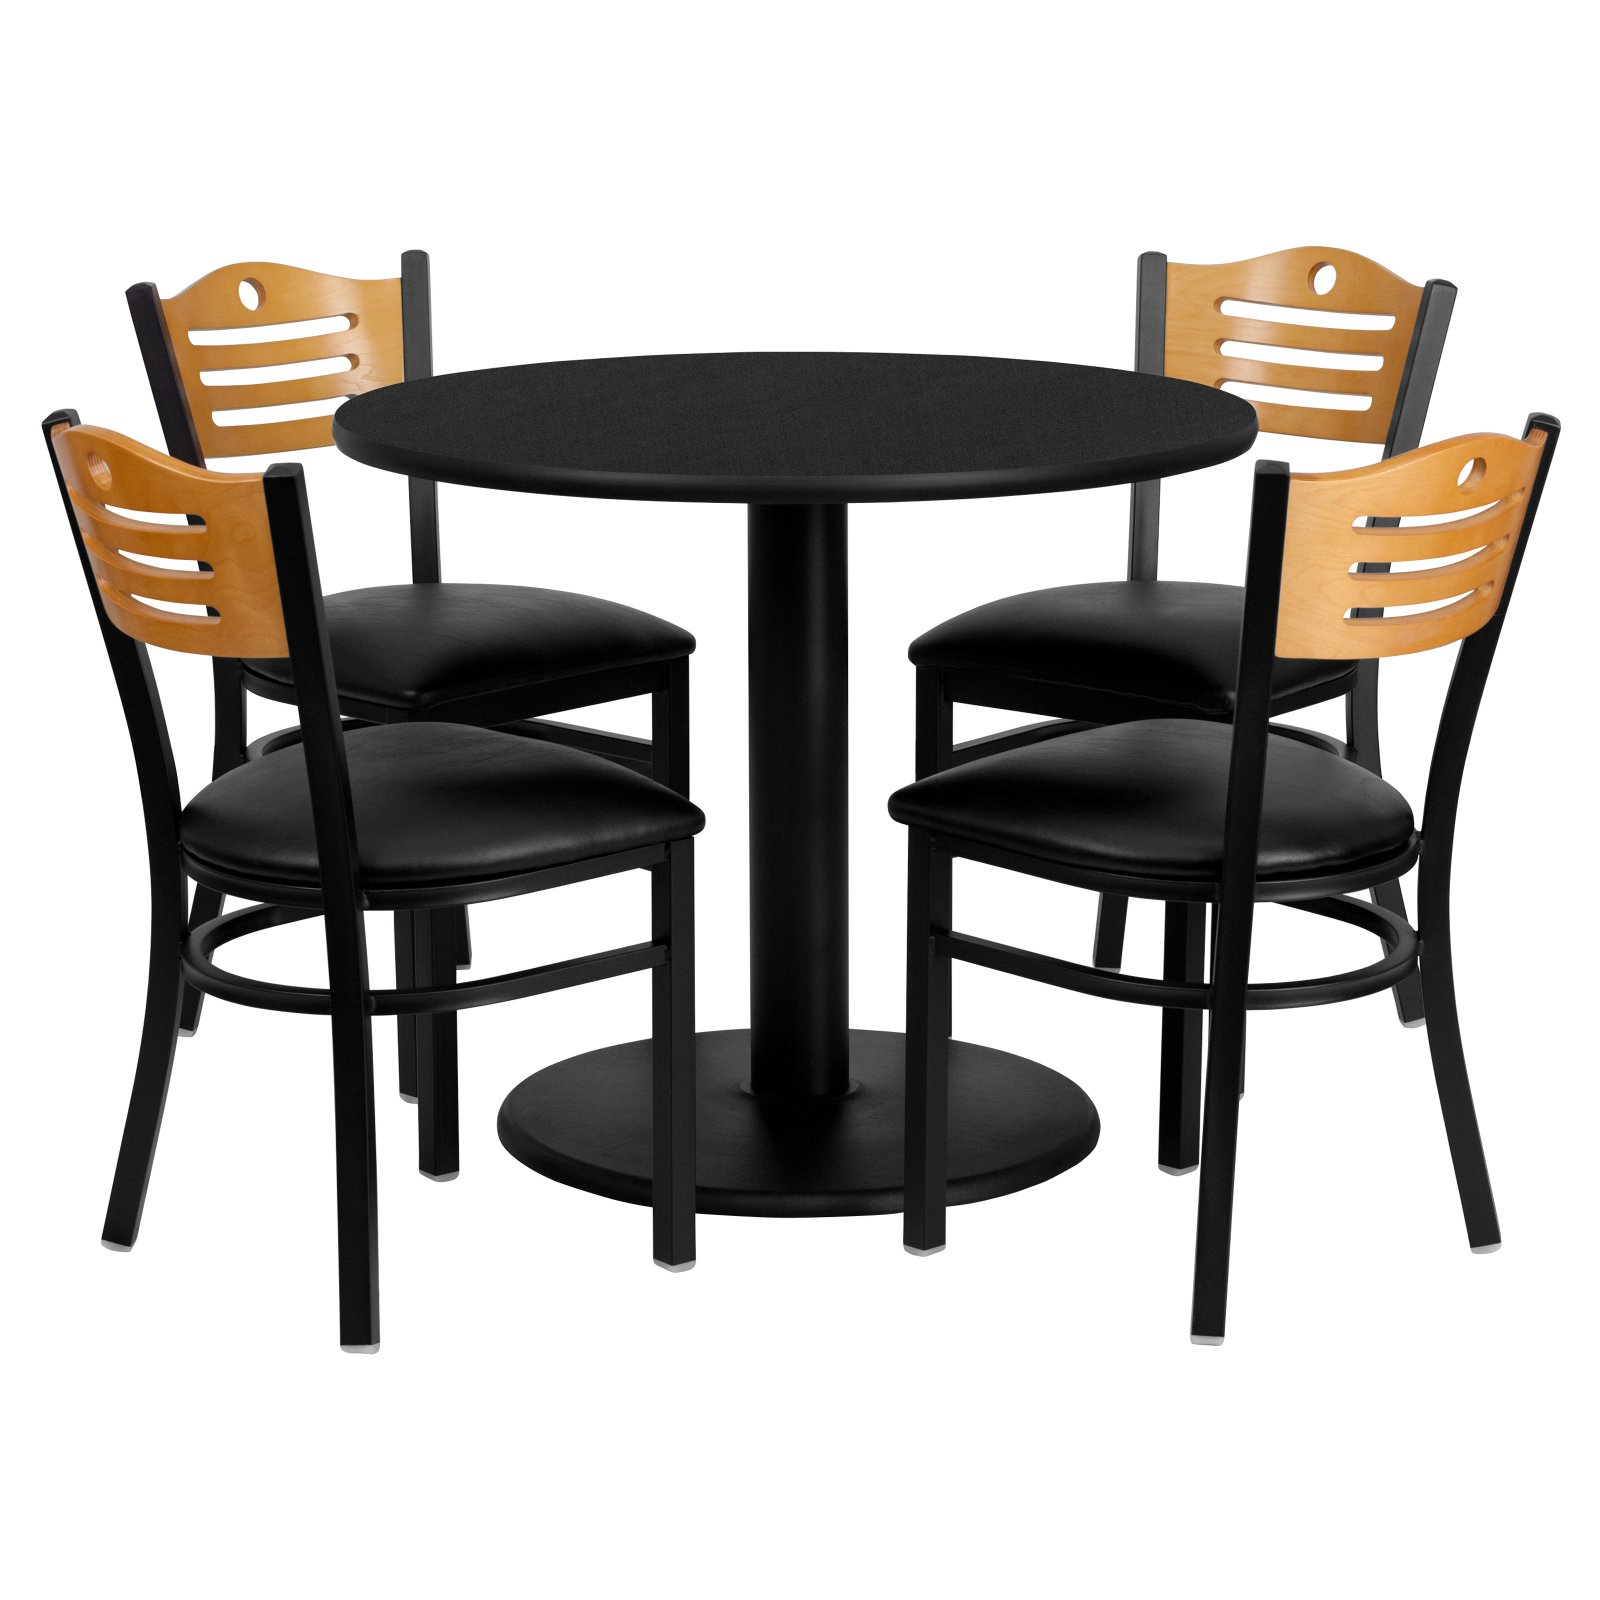 Flash Furniture 36'' Round Black Laminate Table Set with 4 Wood Slat Back Metal Chairs, Black Vinyl Seat